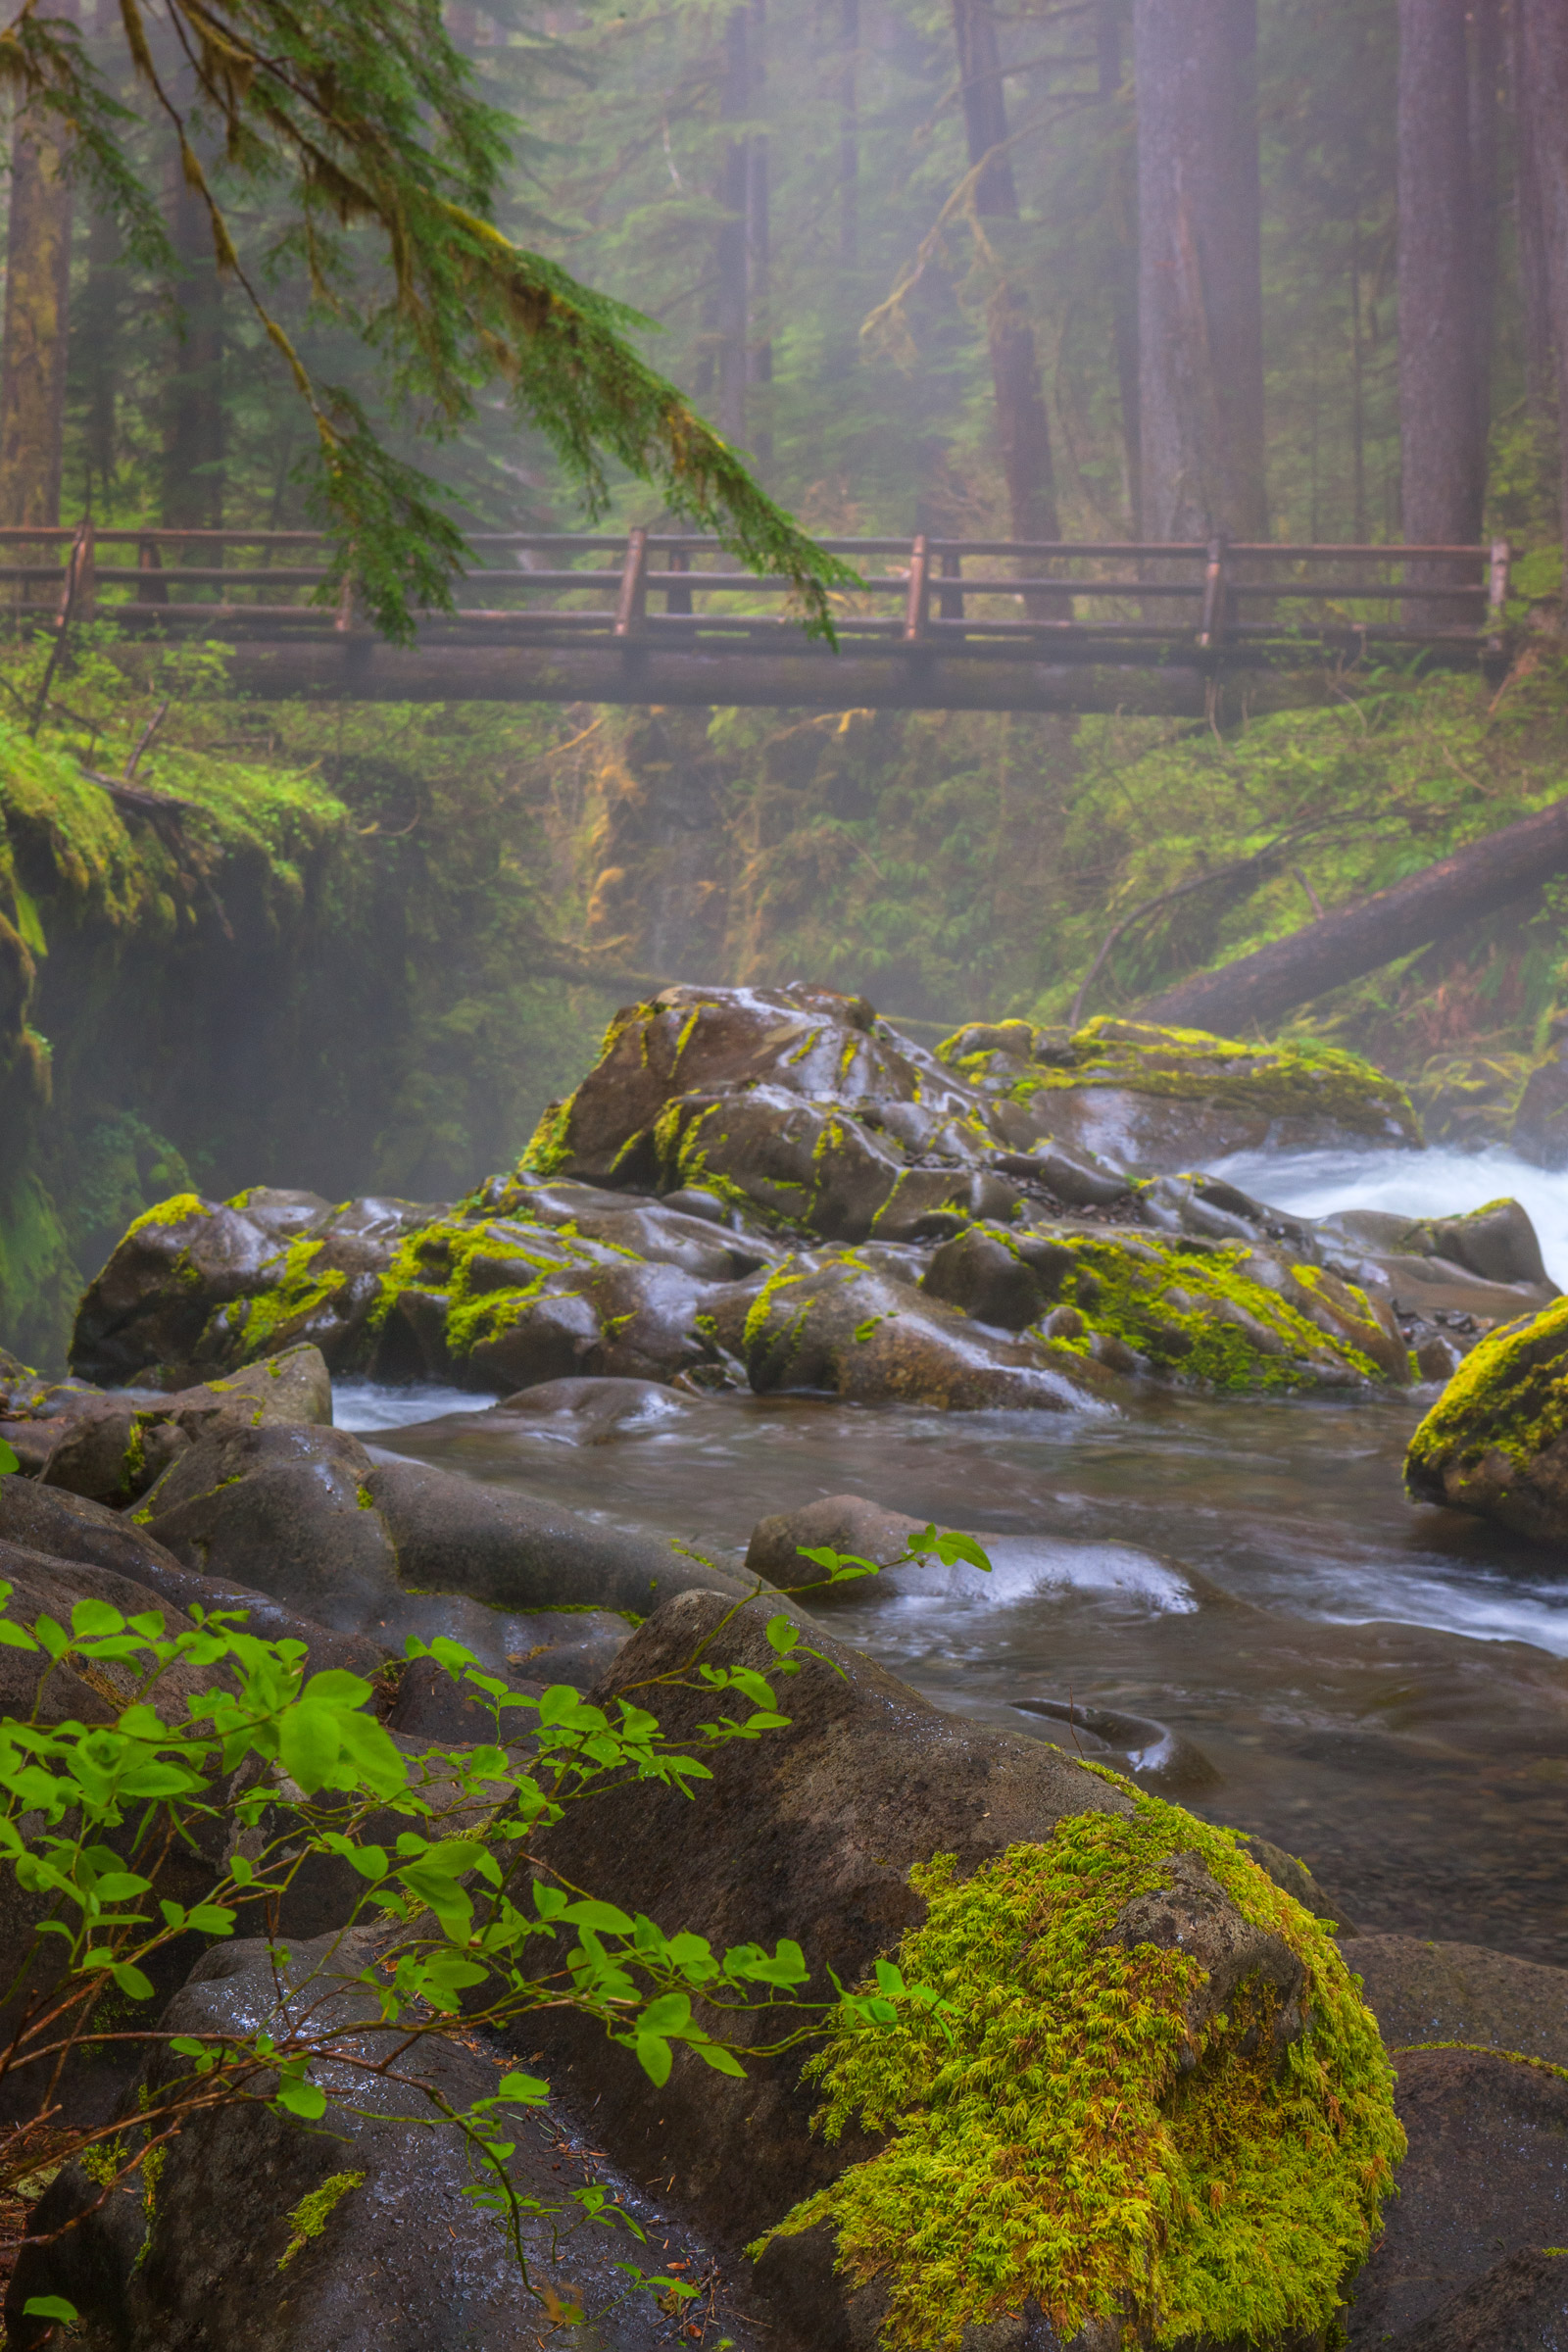 A Limited Edition, Fine Art photograph of a wooden footbridge over a misty river in the Hoh Rain Forest in Olympic National Park...